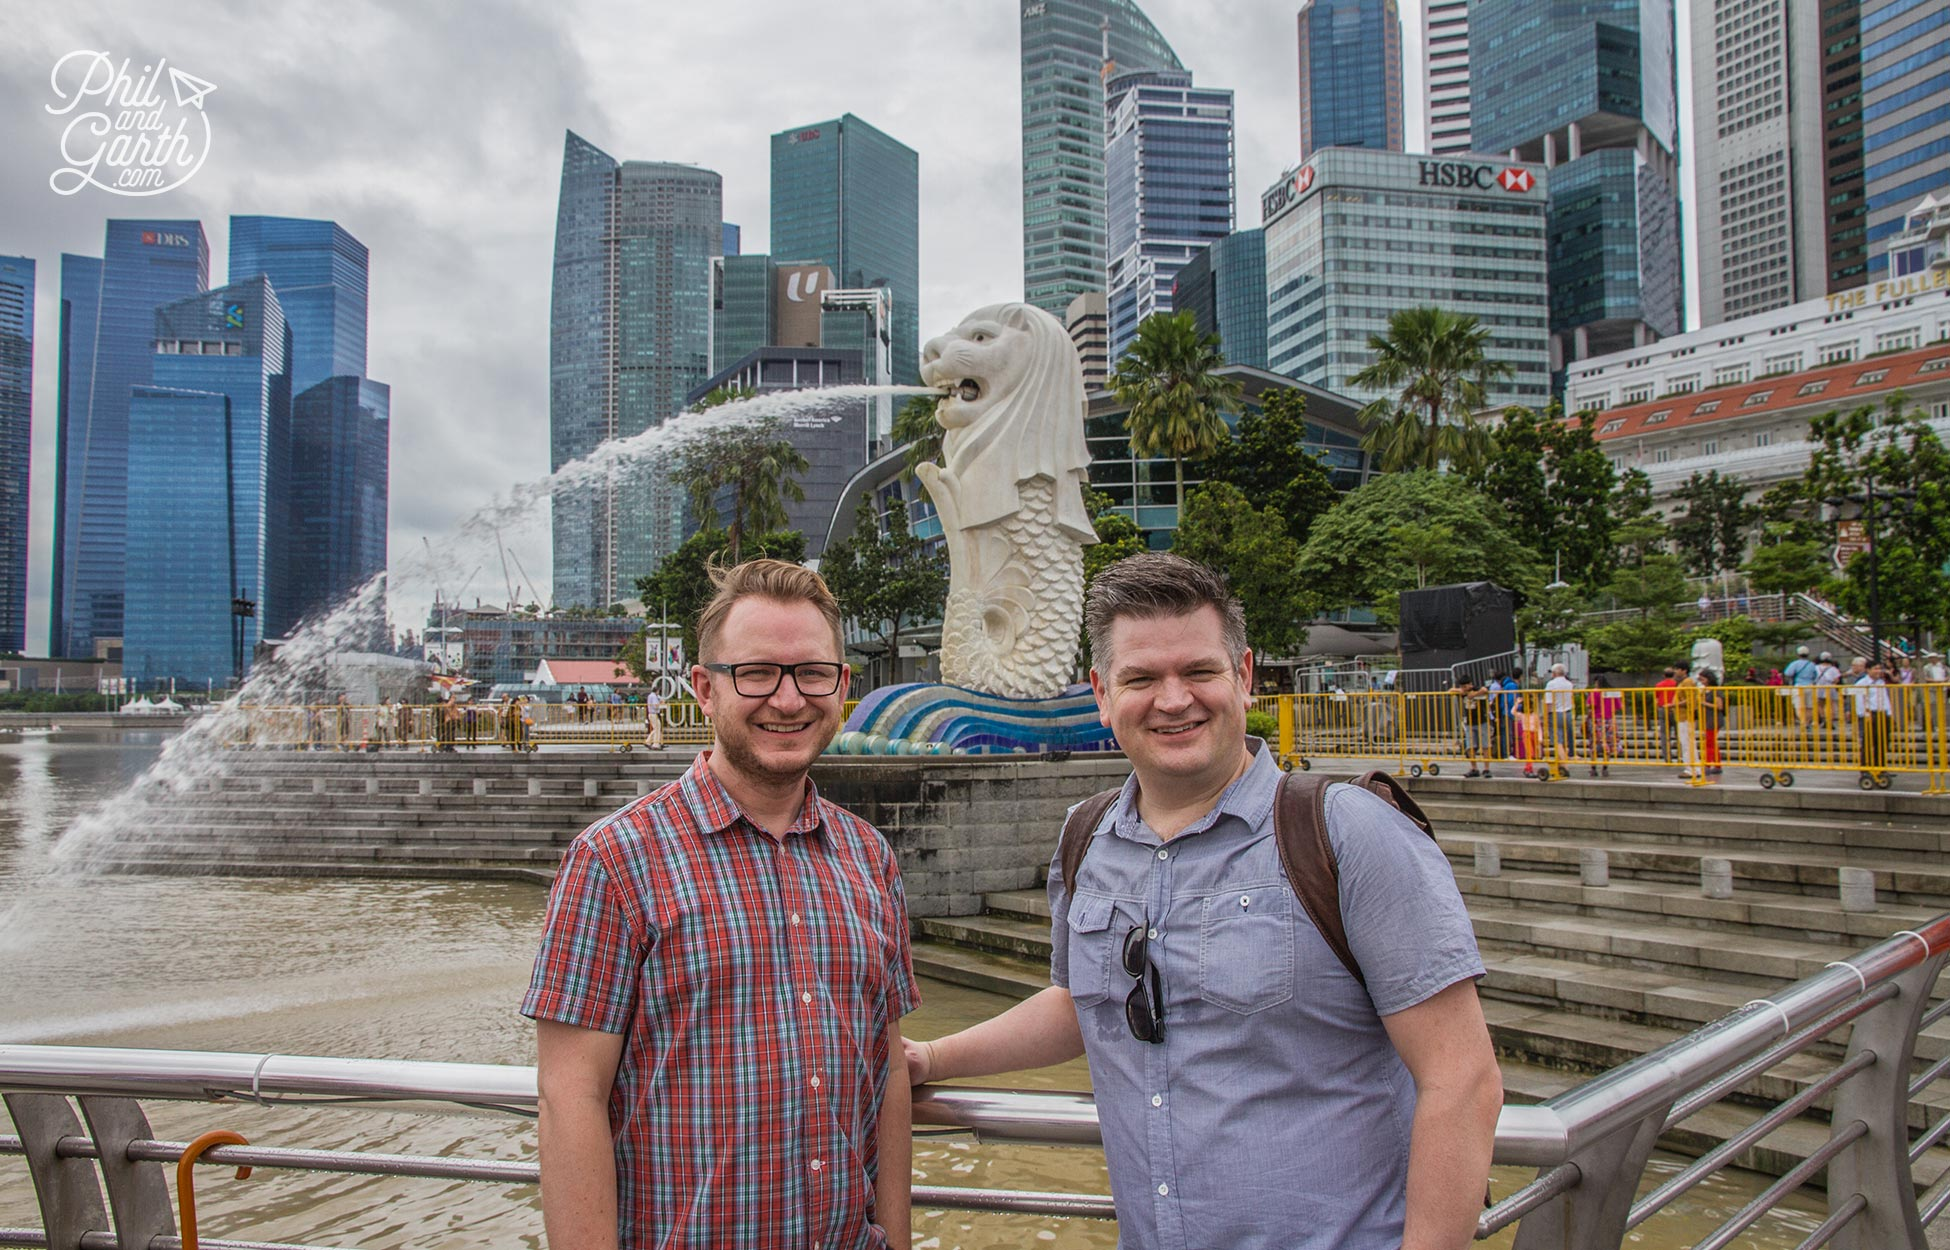 Garth and Phil at Merlion Park